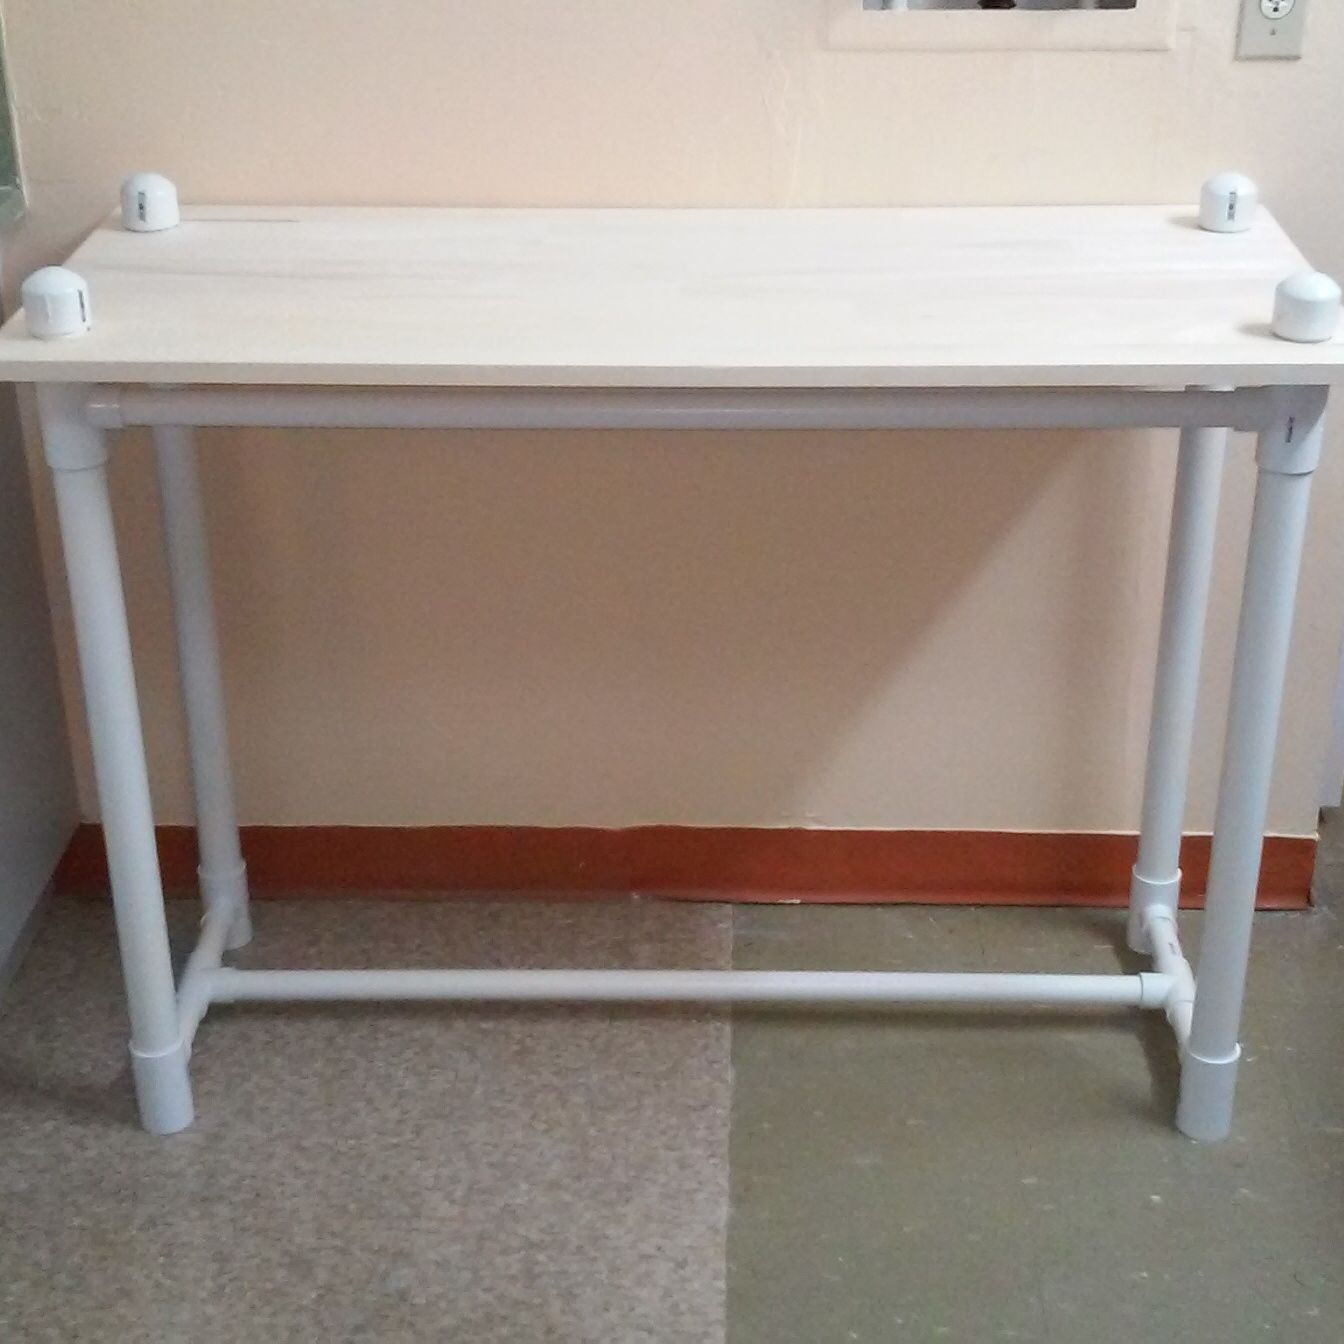 Pvc Pipe And Wood Table Pvc Pipe Projects